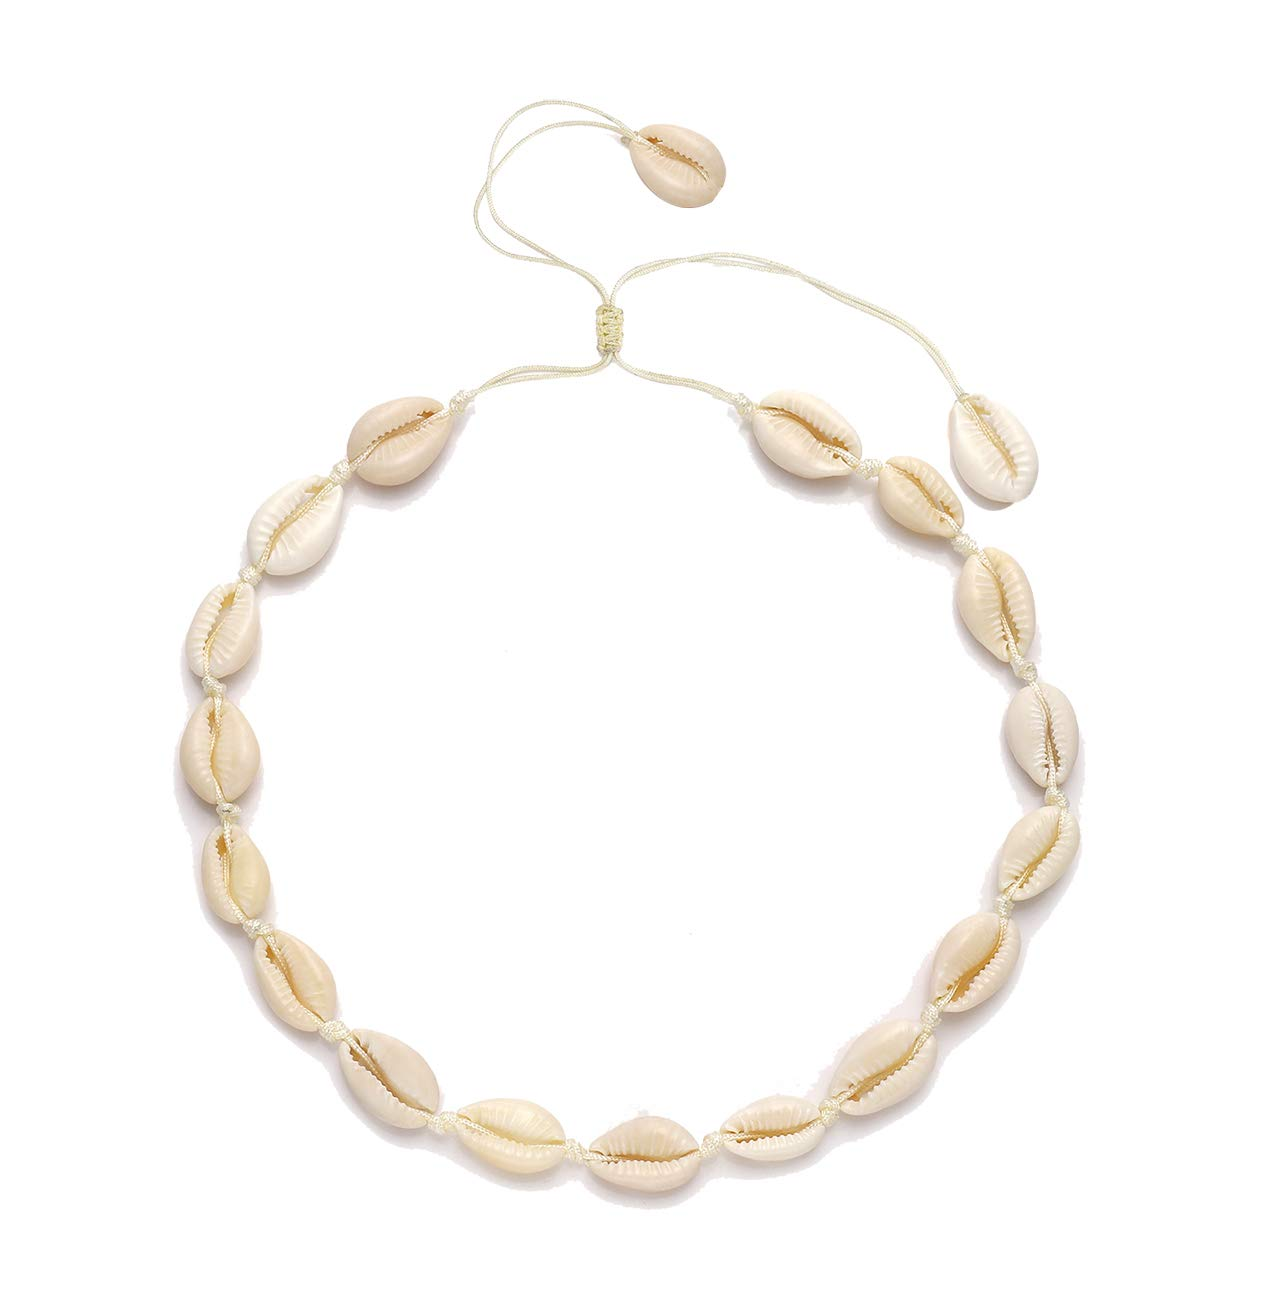 CENAPOG Cowrie Shell Choker Necklace for Women Puka Shell Necklace Corded Seashell Necklace Hawaiian Beach Jewelry by CENAPOG